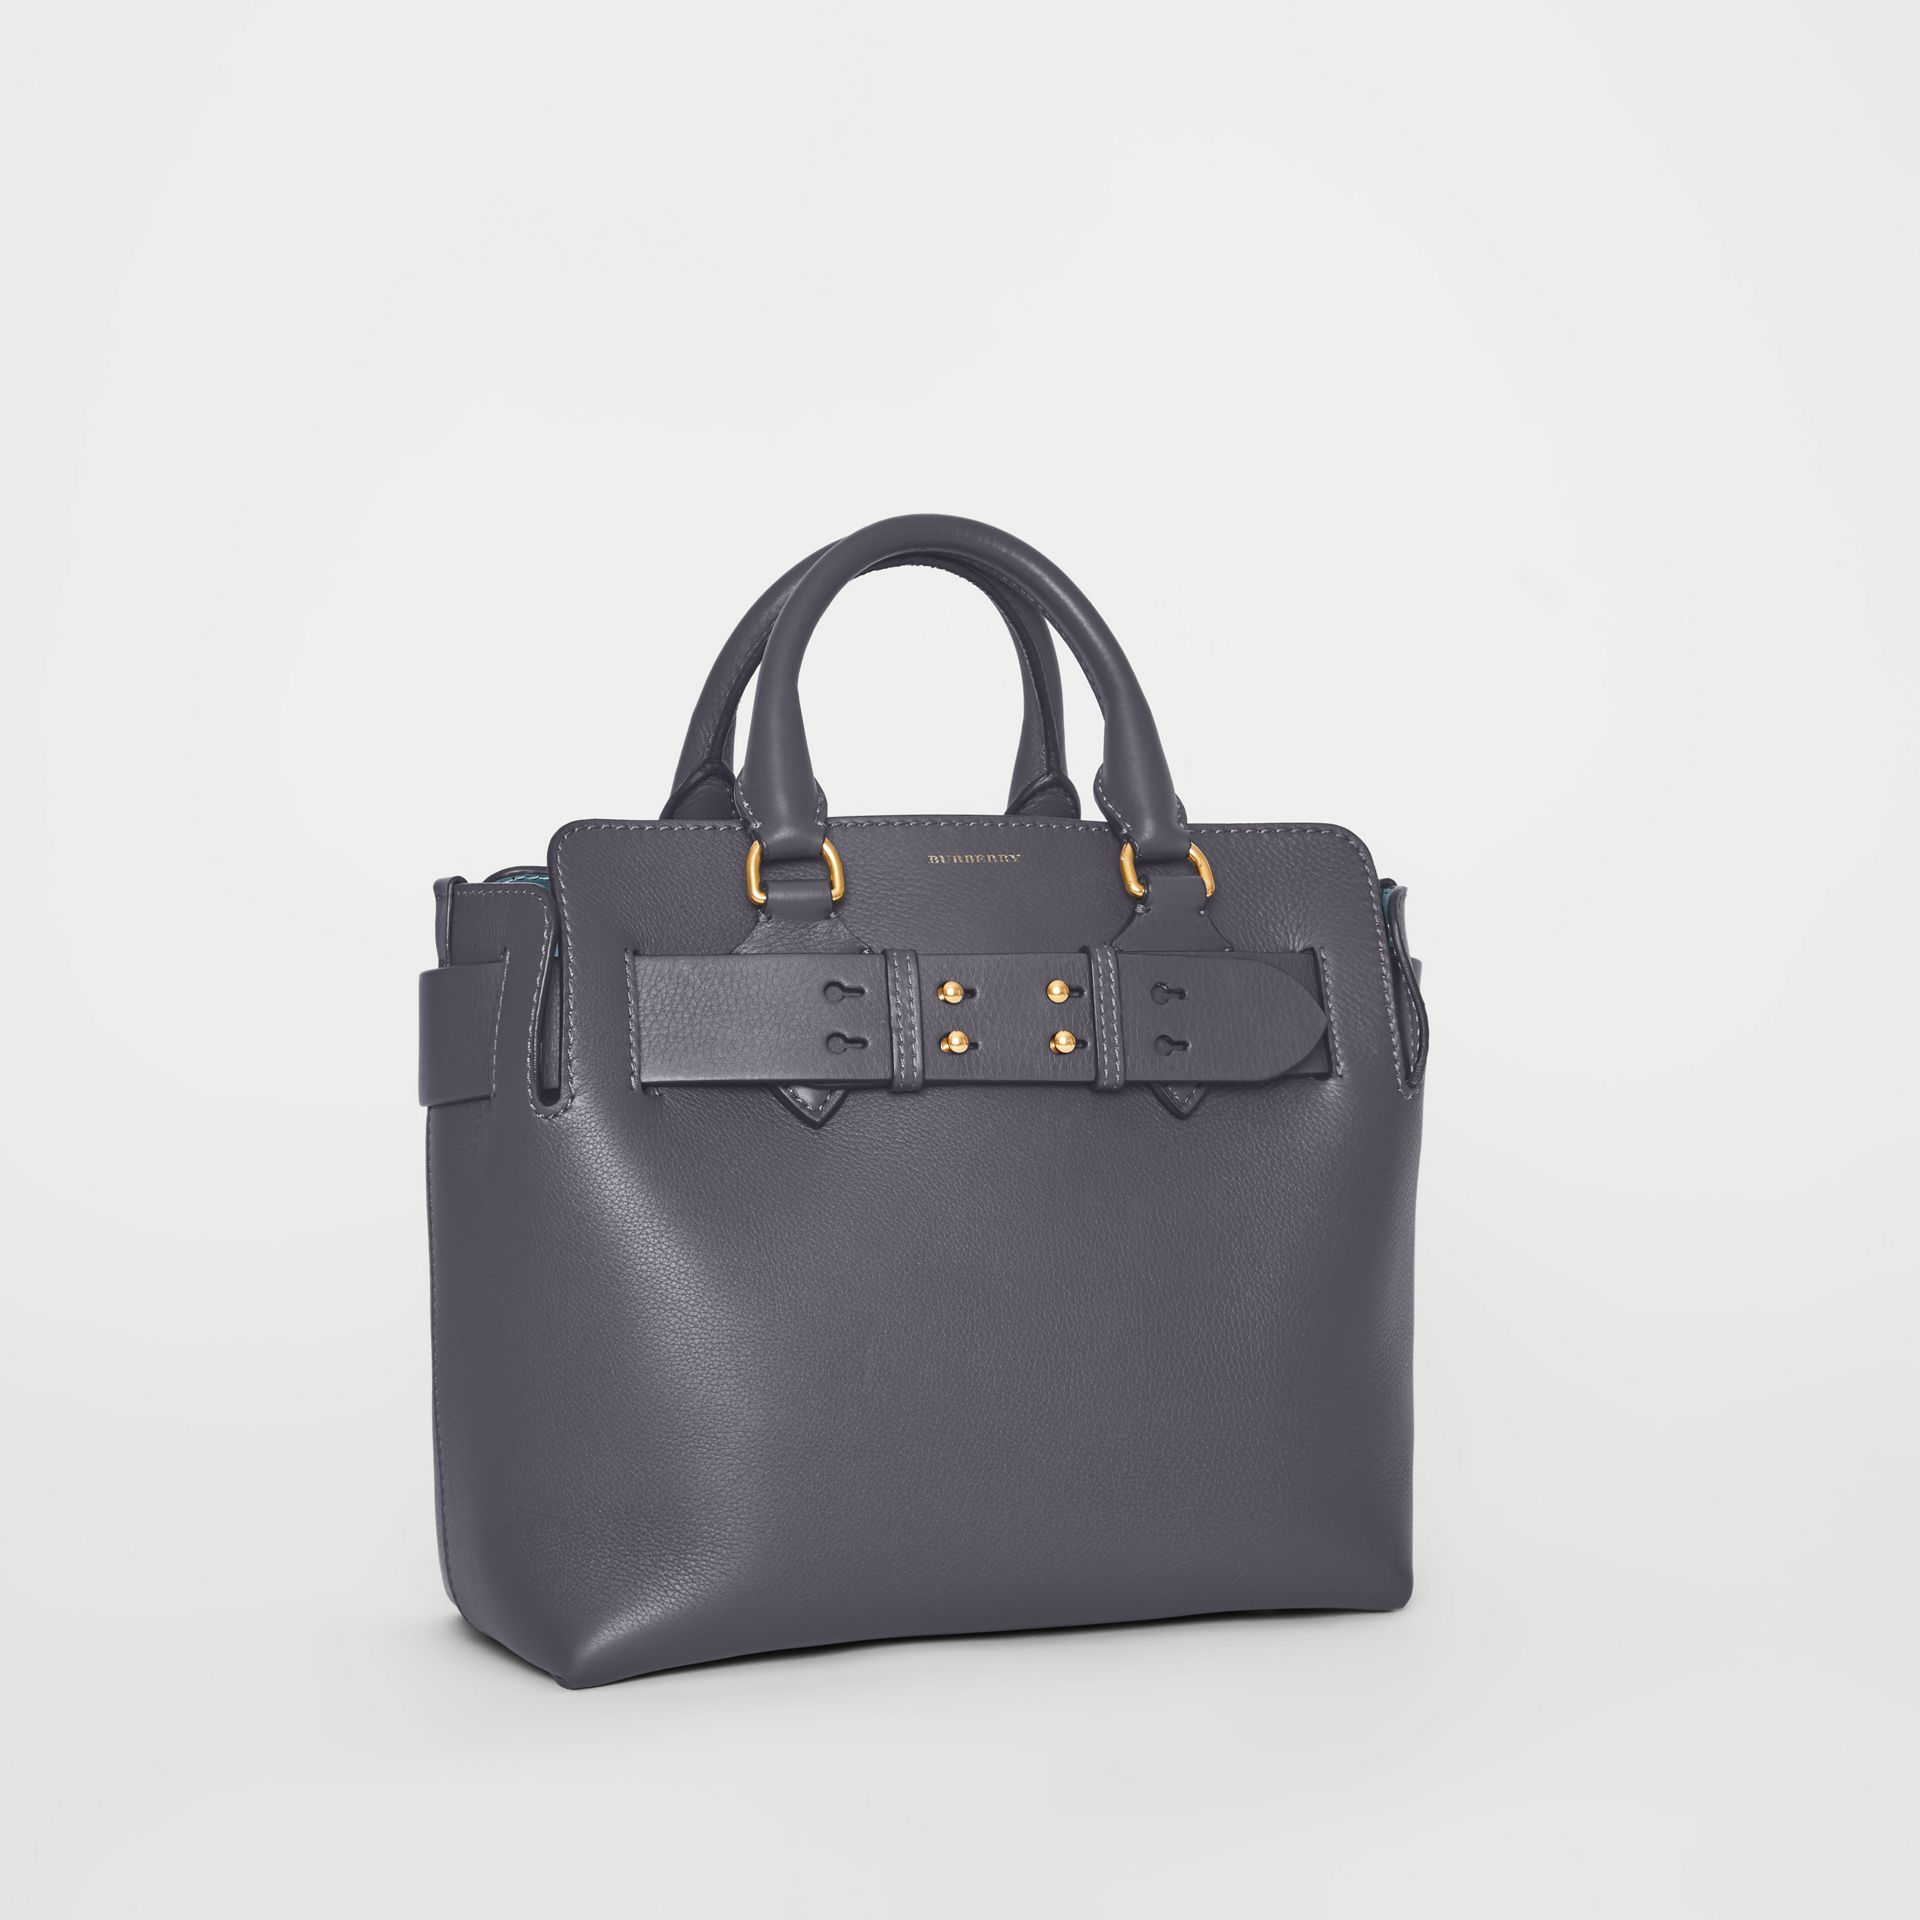 Petit sac The Belt en cuir (Gris Anthracite) - Femme | Burberry Canada - photo de la galerie 5